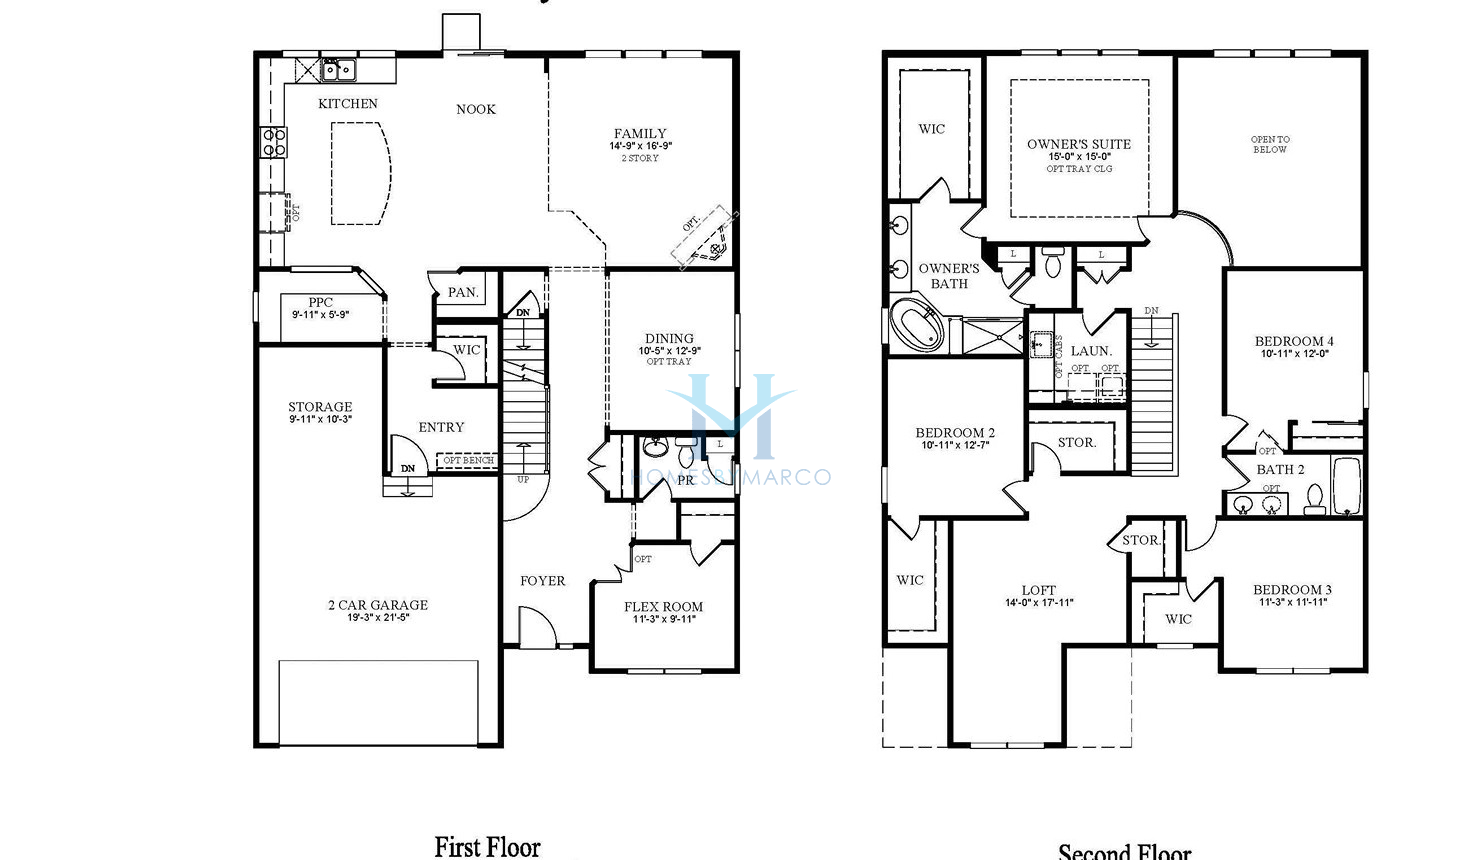 Homes By Marco Floor Plans: Waverly Model In The Hawthorn Hills Subdivision In